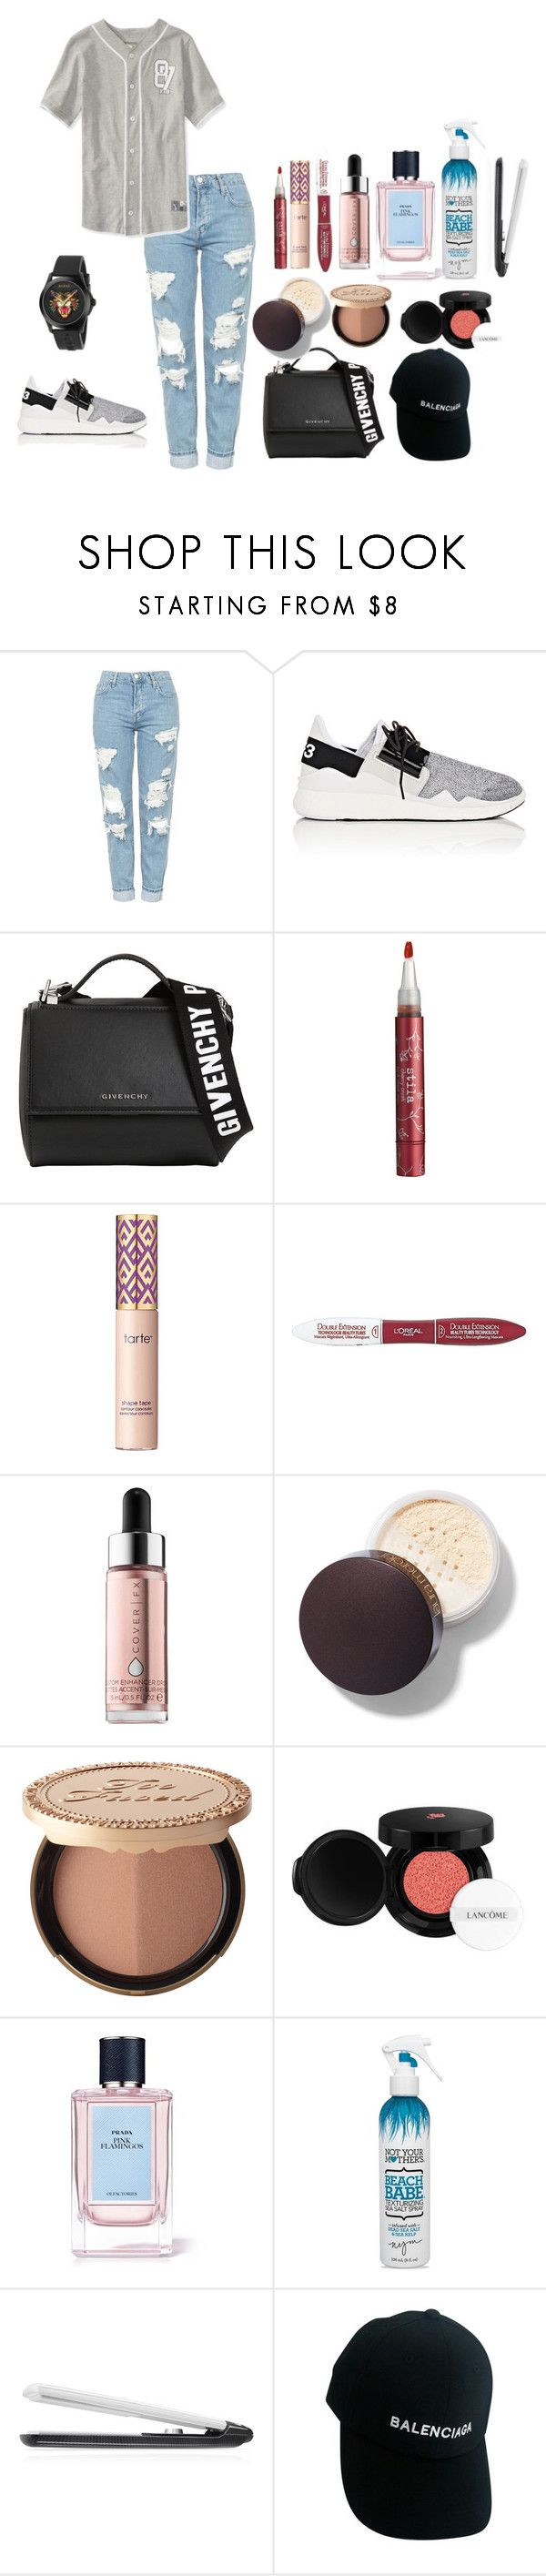 """boyish"" by rahmadita14 on Polyvore featuring Topshop, Y-3, Givenchy, Stila, tarte, L'Oréal Paris, Cover FX, Too Faced Cosmetics, Lancôme and Prada"